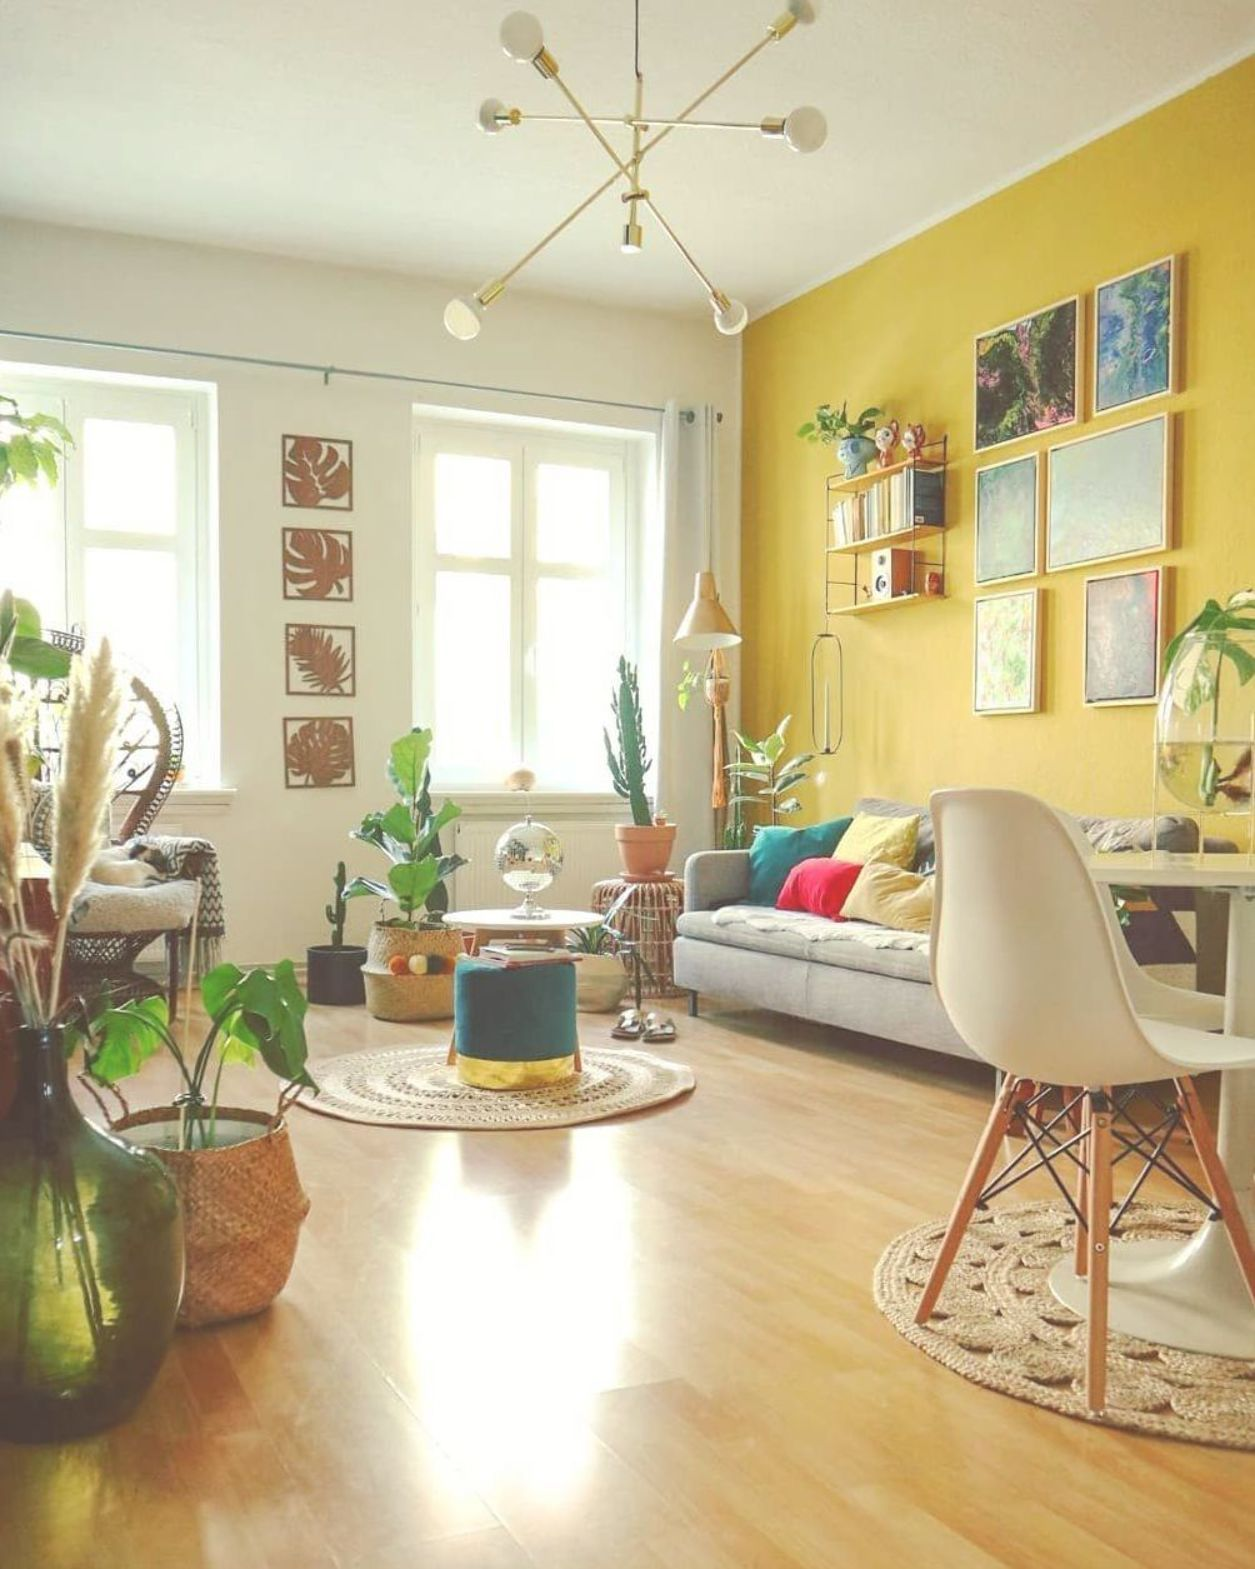 Image May Contain Table Plant Living Room And Indoor Yellow Walls Living Room Yellow Living Room Yellow Home Decor